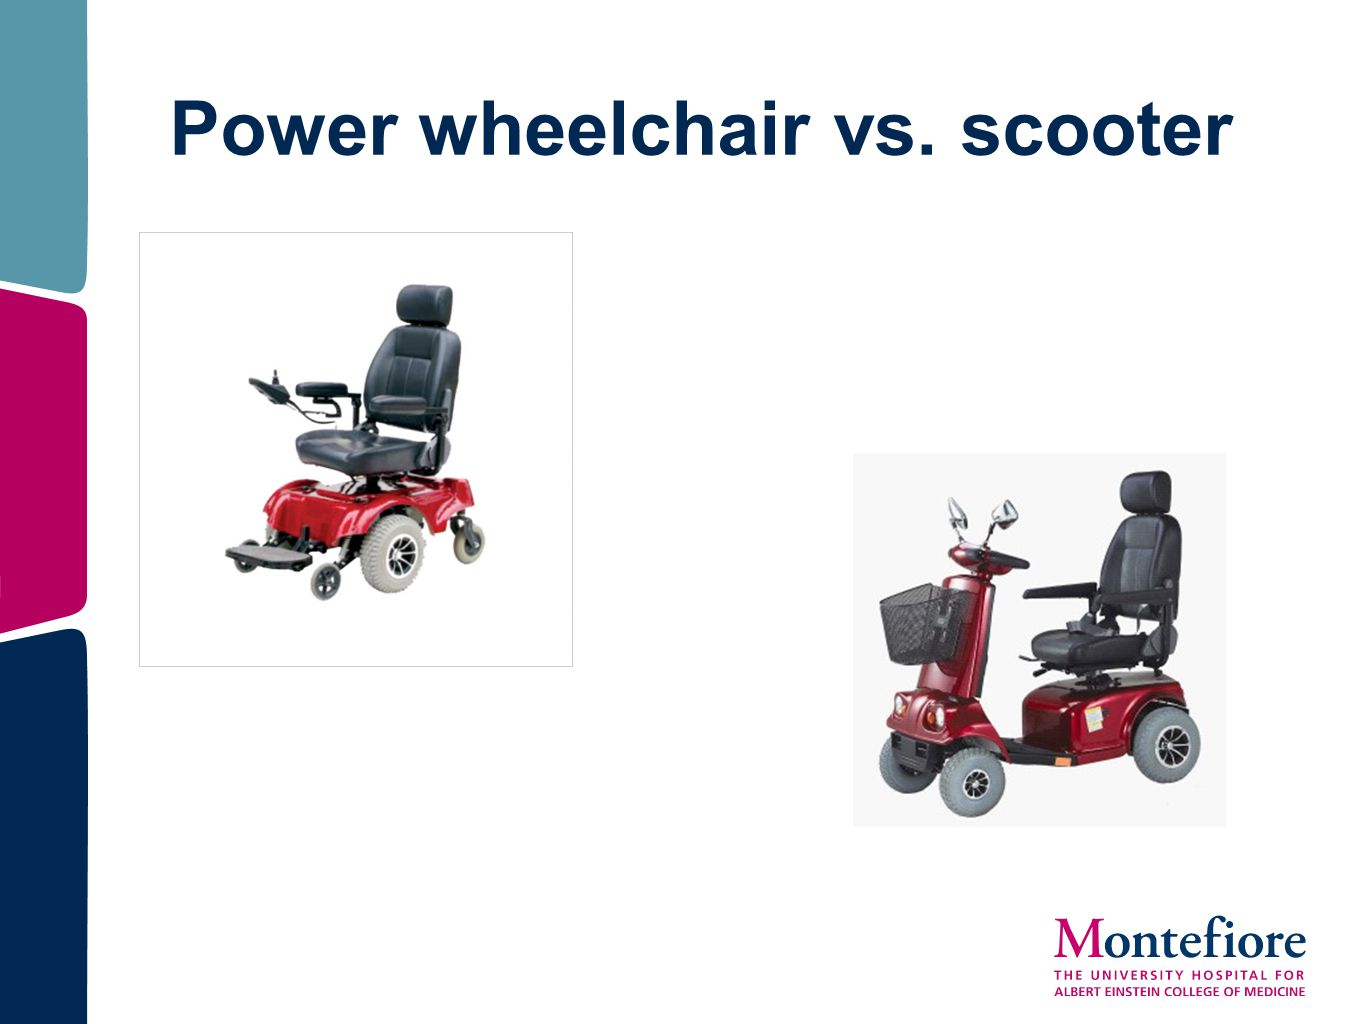 Power wheelchair vs. scooter